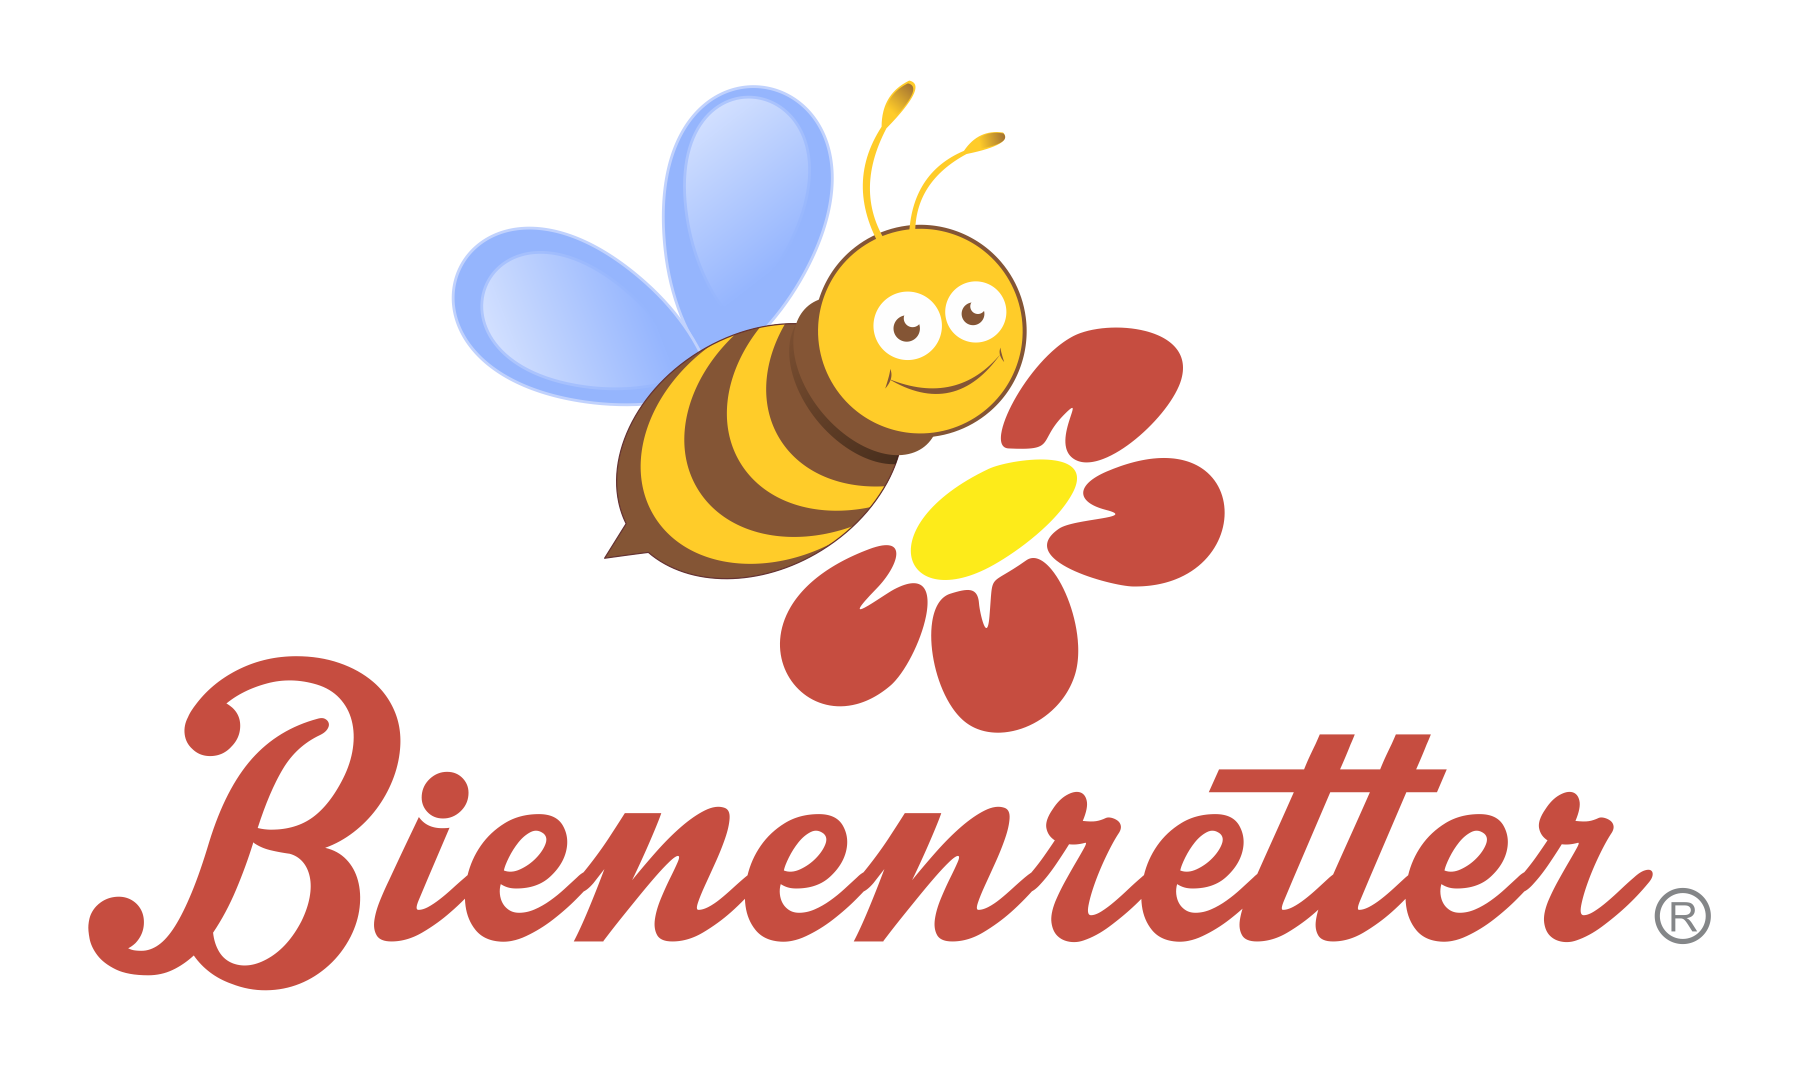 Bienenretter - the bee savers